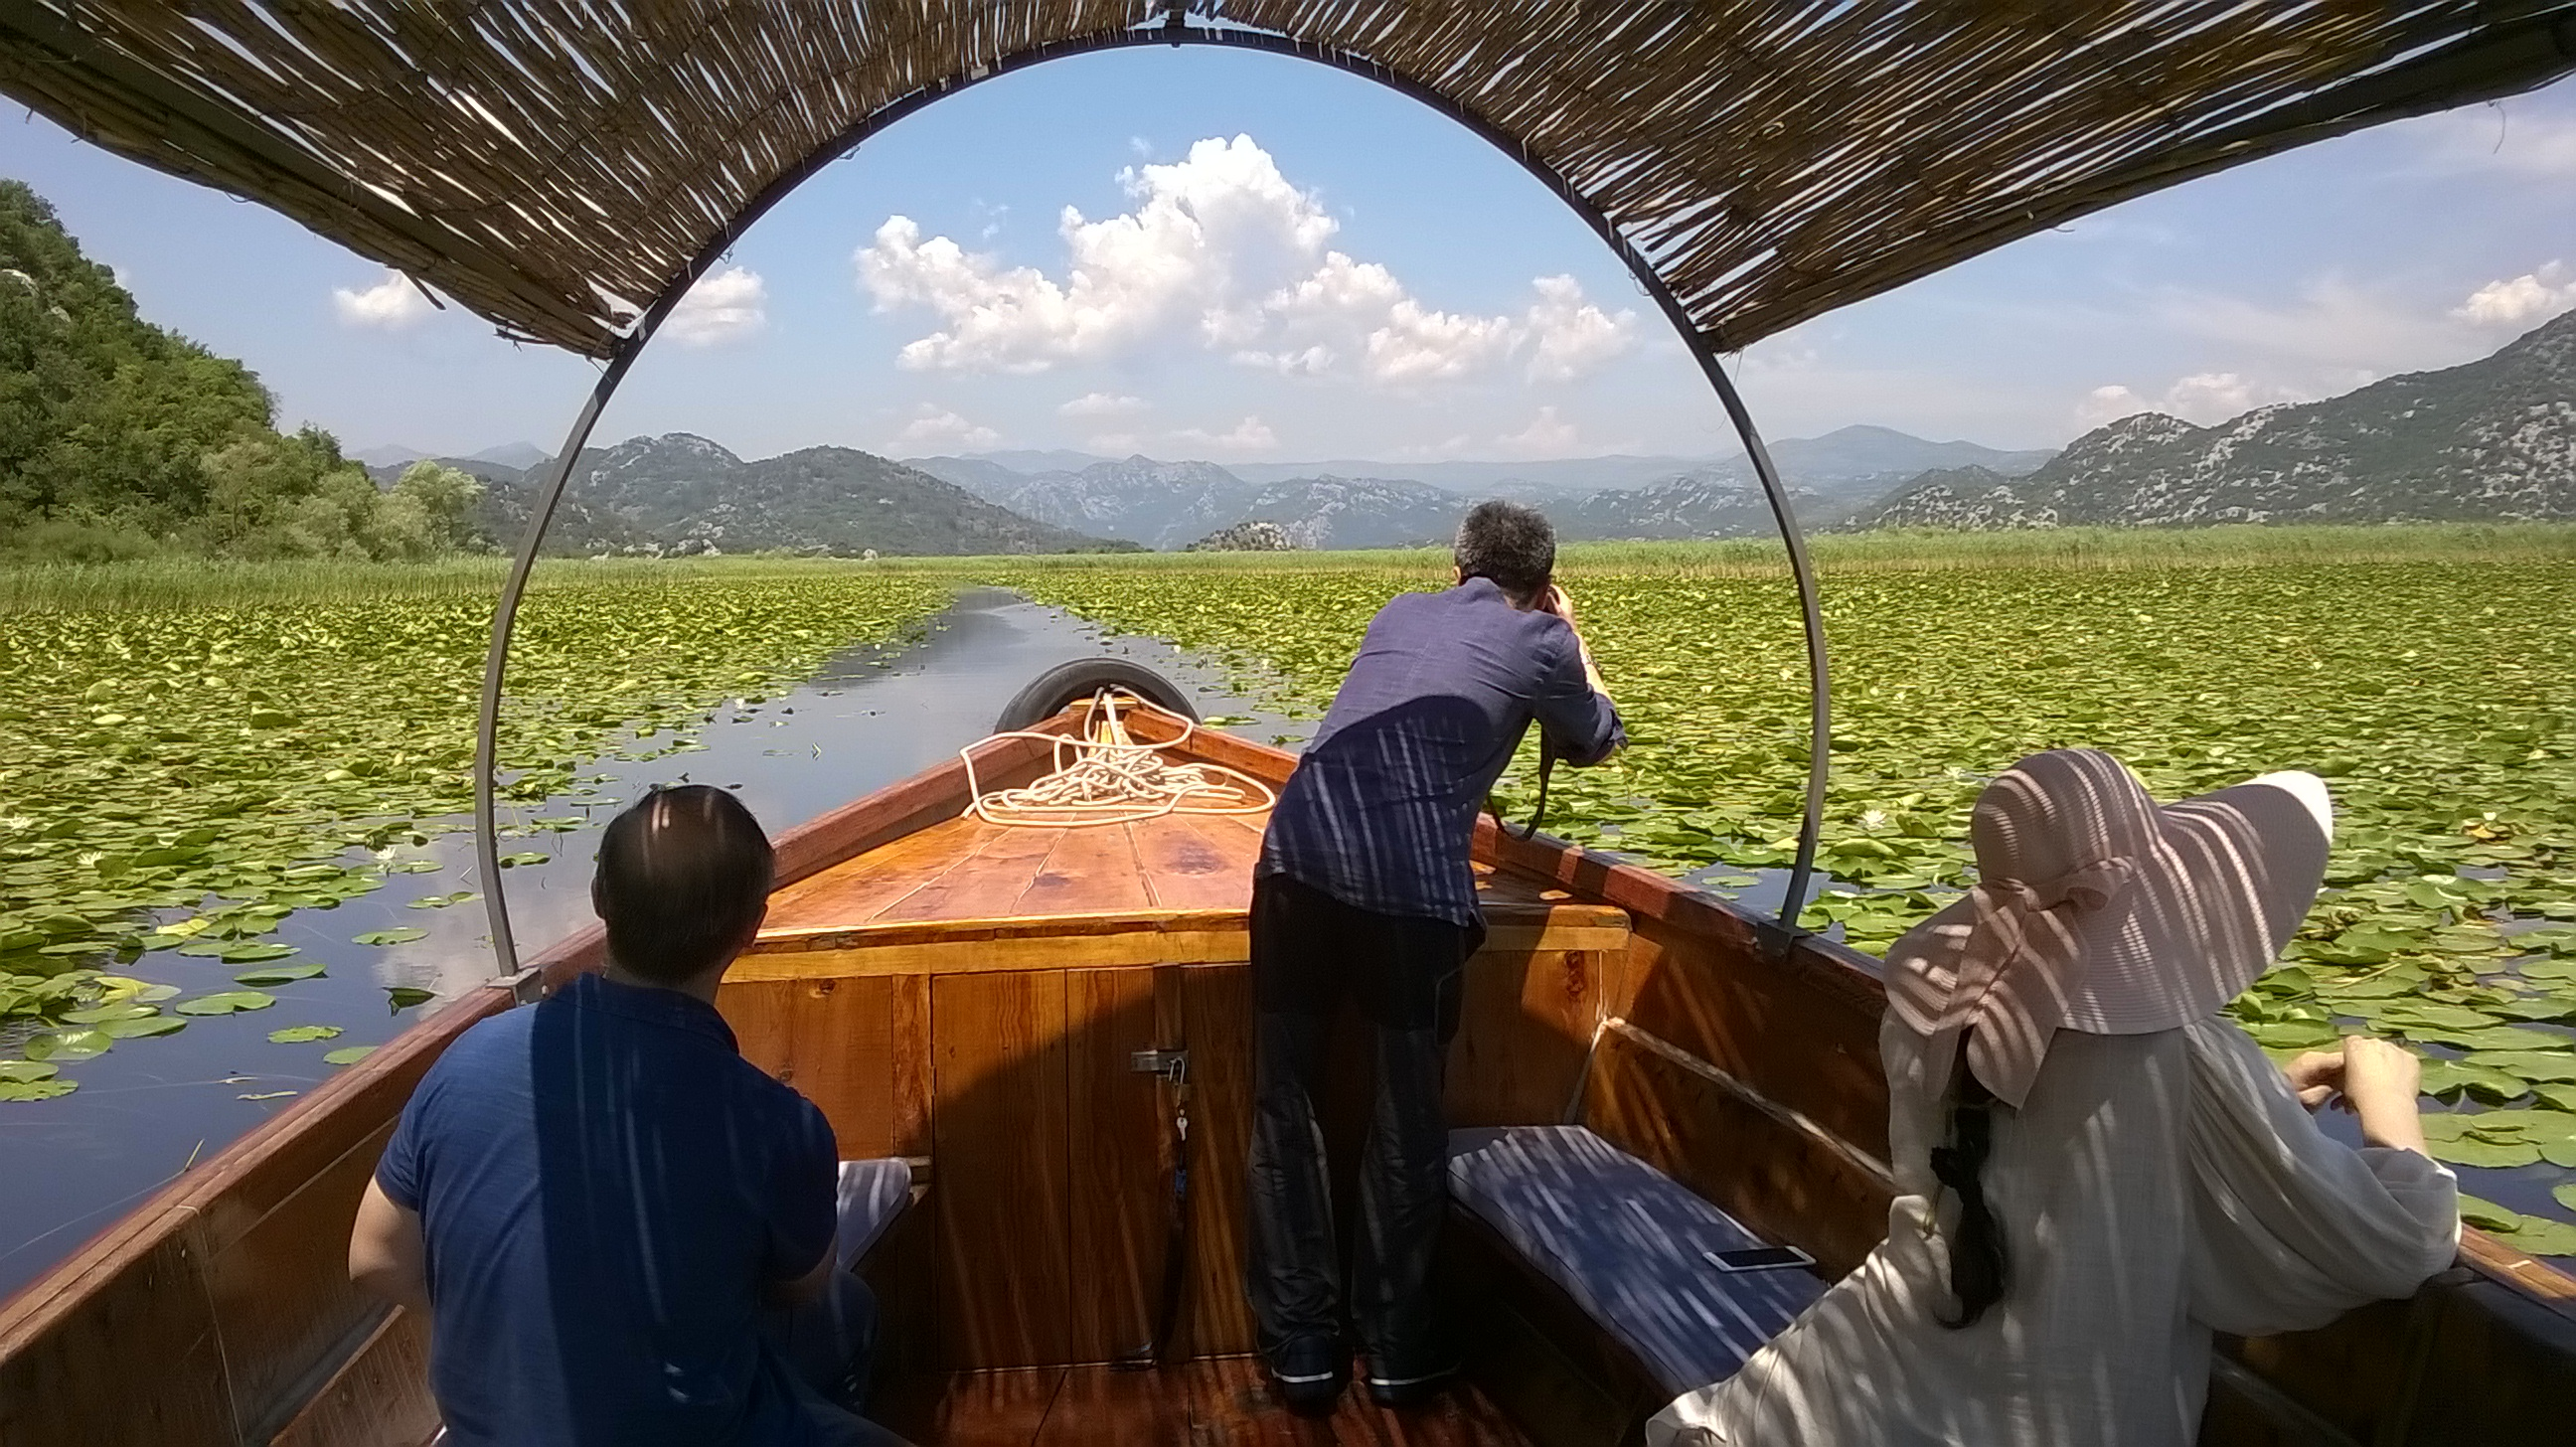 Skadar Lake Boat Trip; photo by Nino M. Markovic